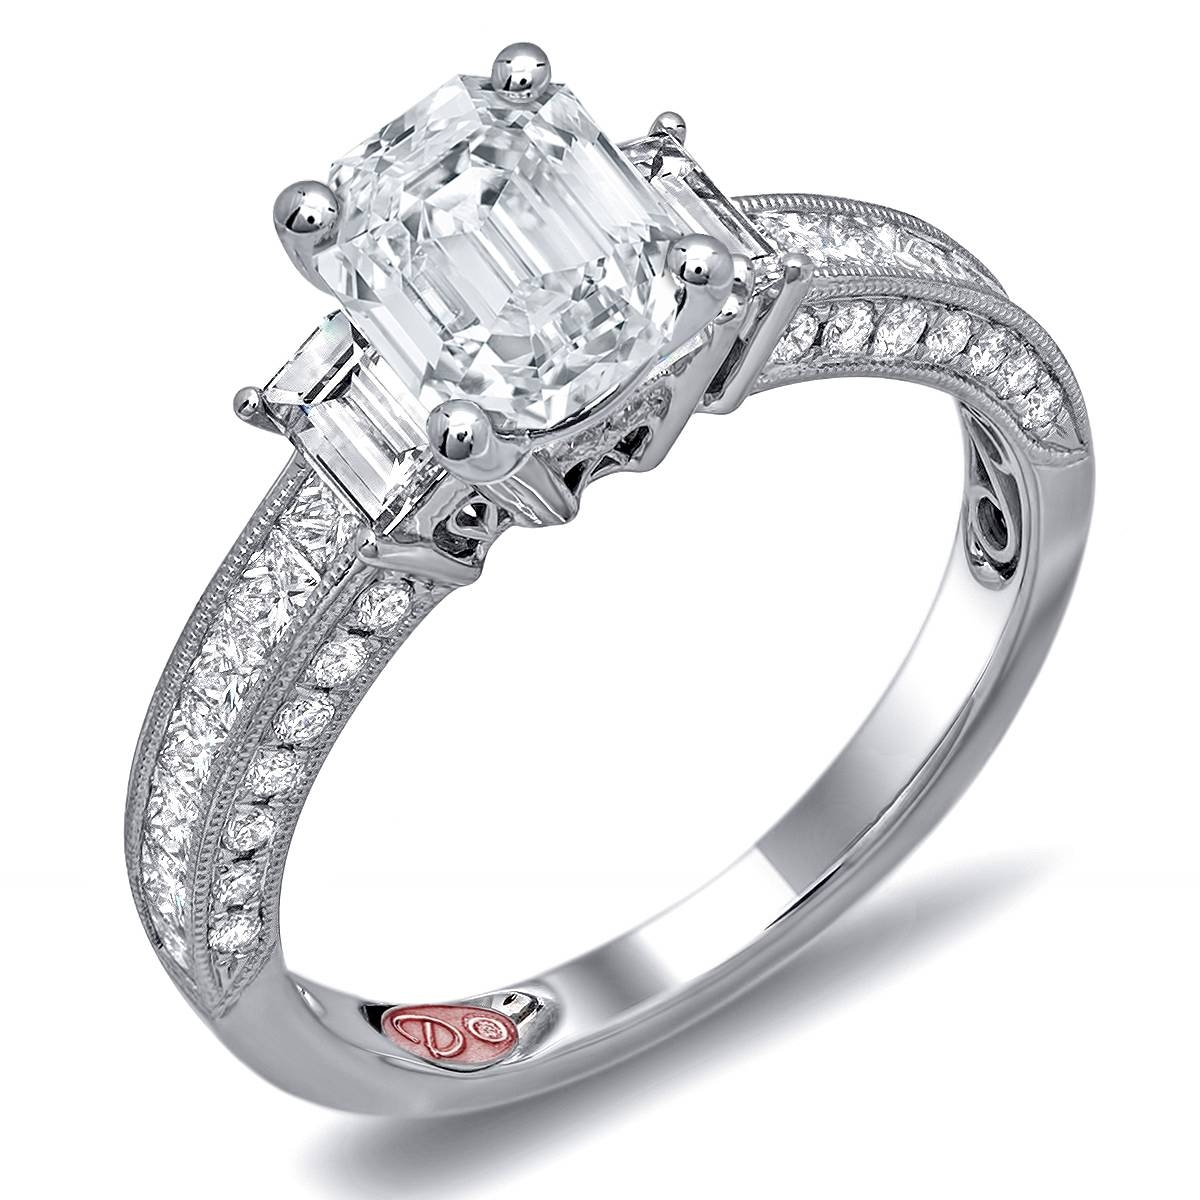 Unicorn Jewelry & Watch Boutique | Unique Engagement Rings – Dw6129 For San Diego Engagement Rings (View 10 of 15)